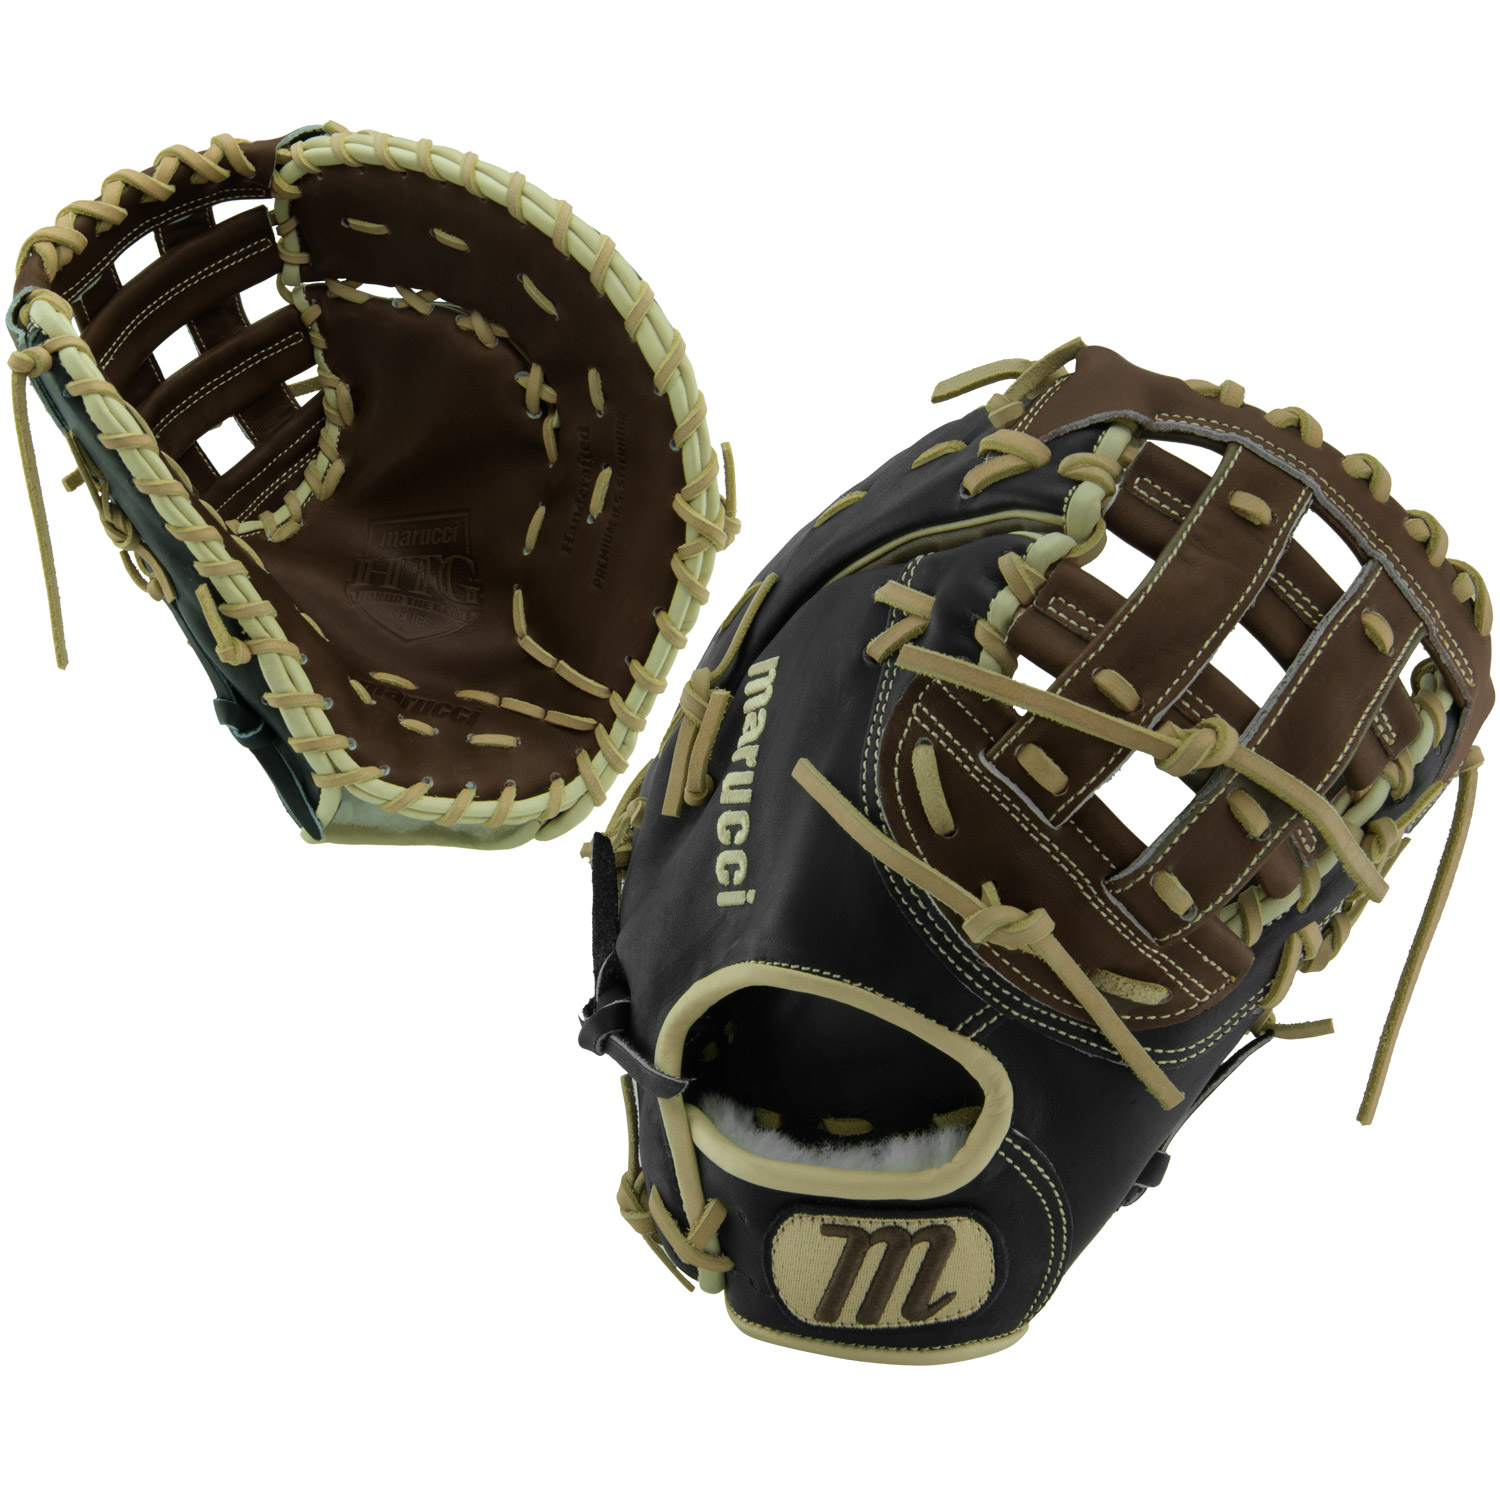 "MARUCCI HTG Honor The Game 12.5/"" First Base Mitt Right Hand Throw MFGHG125FB-KR"